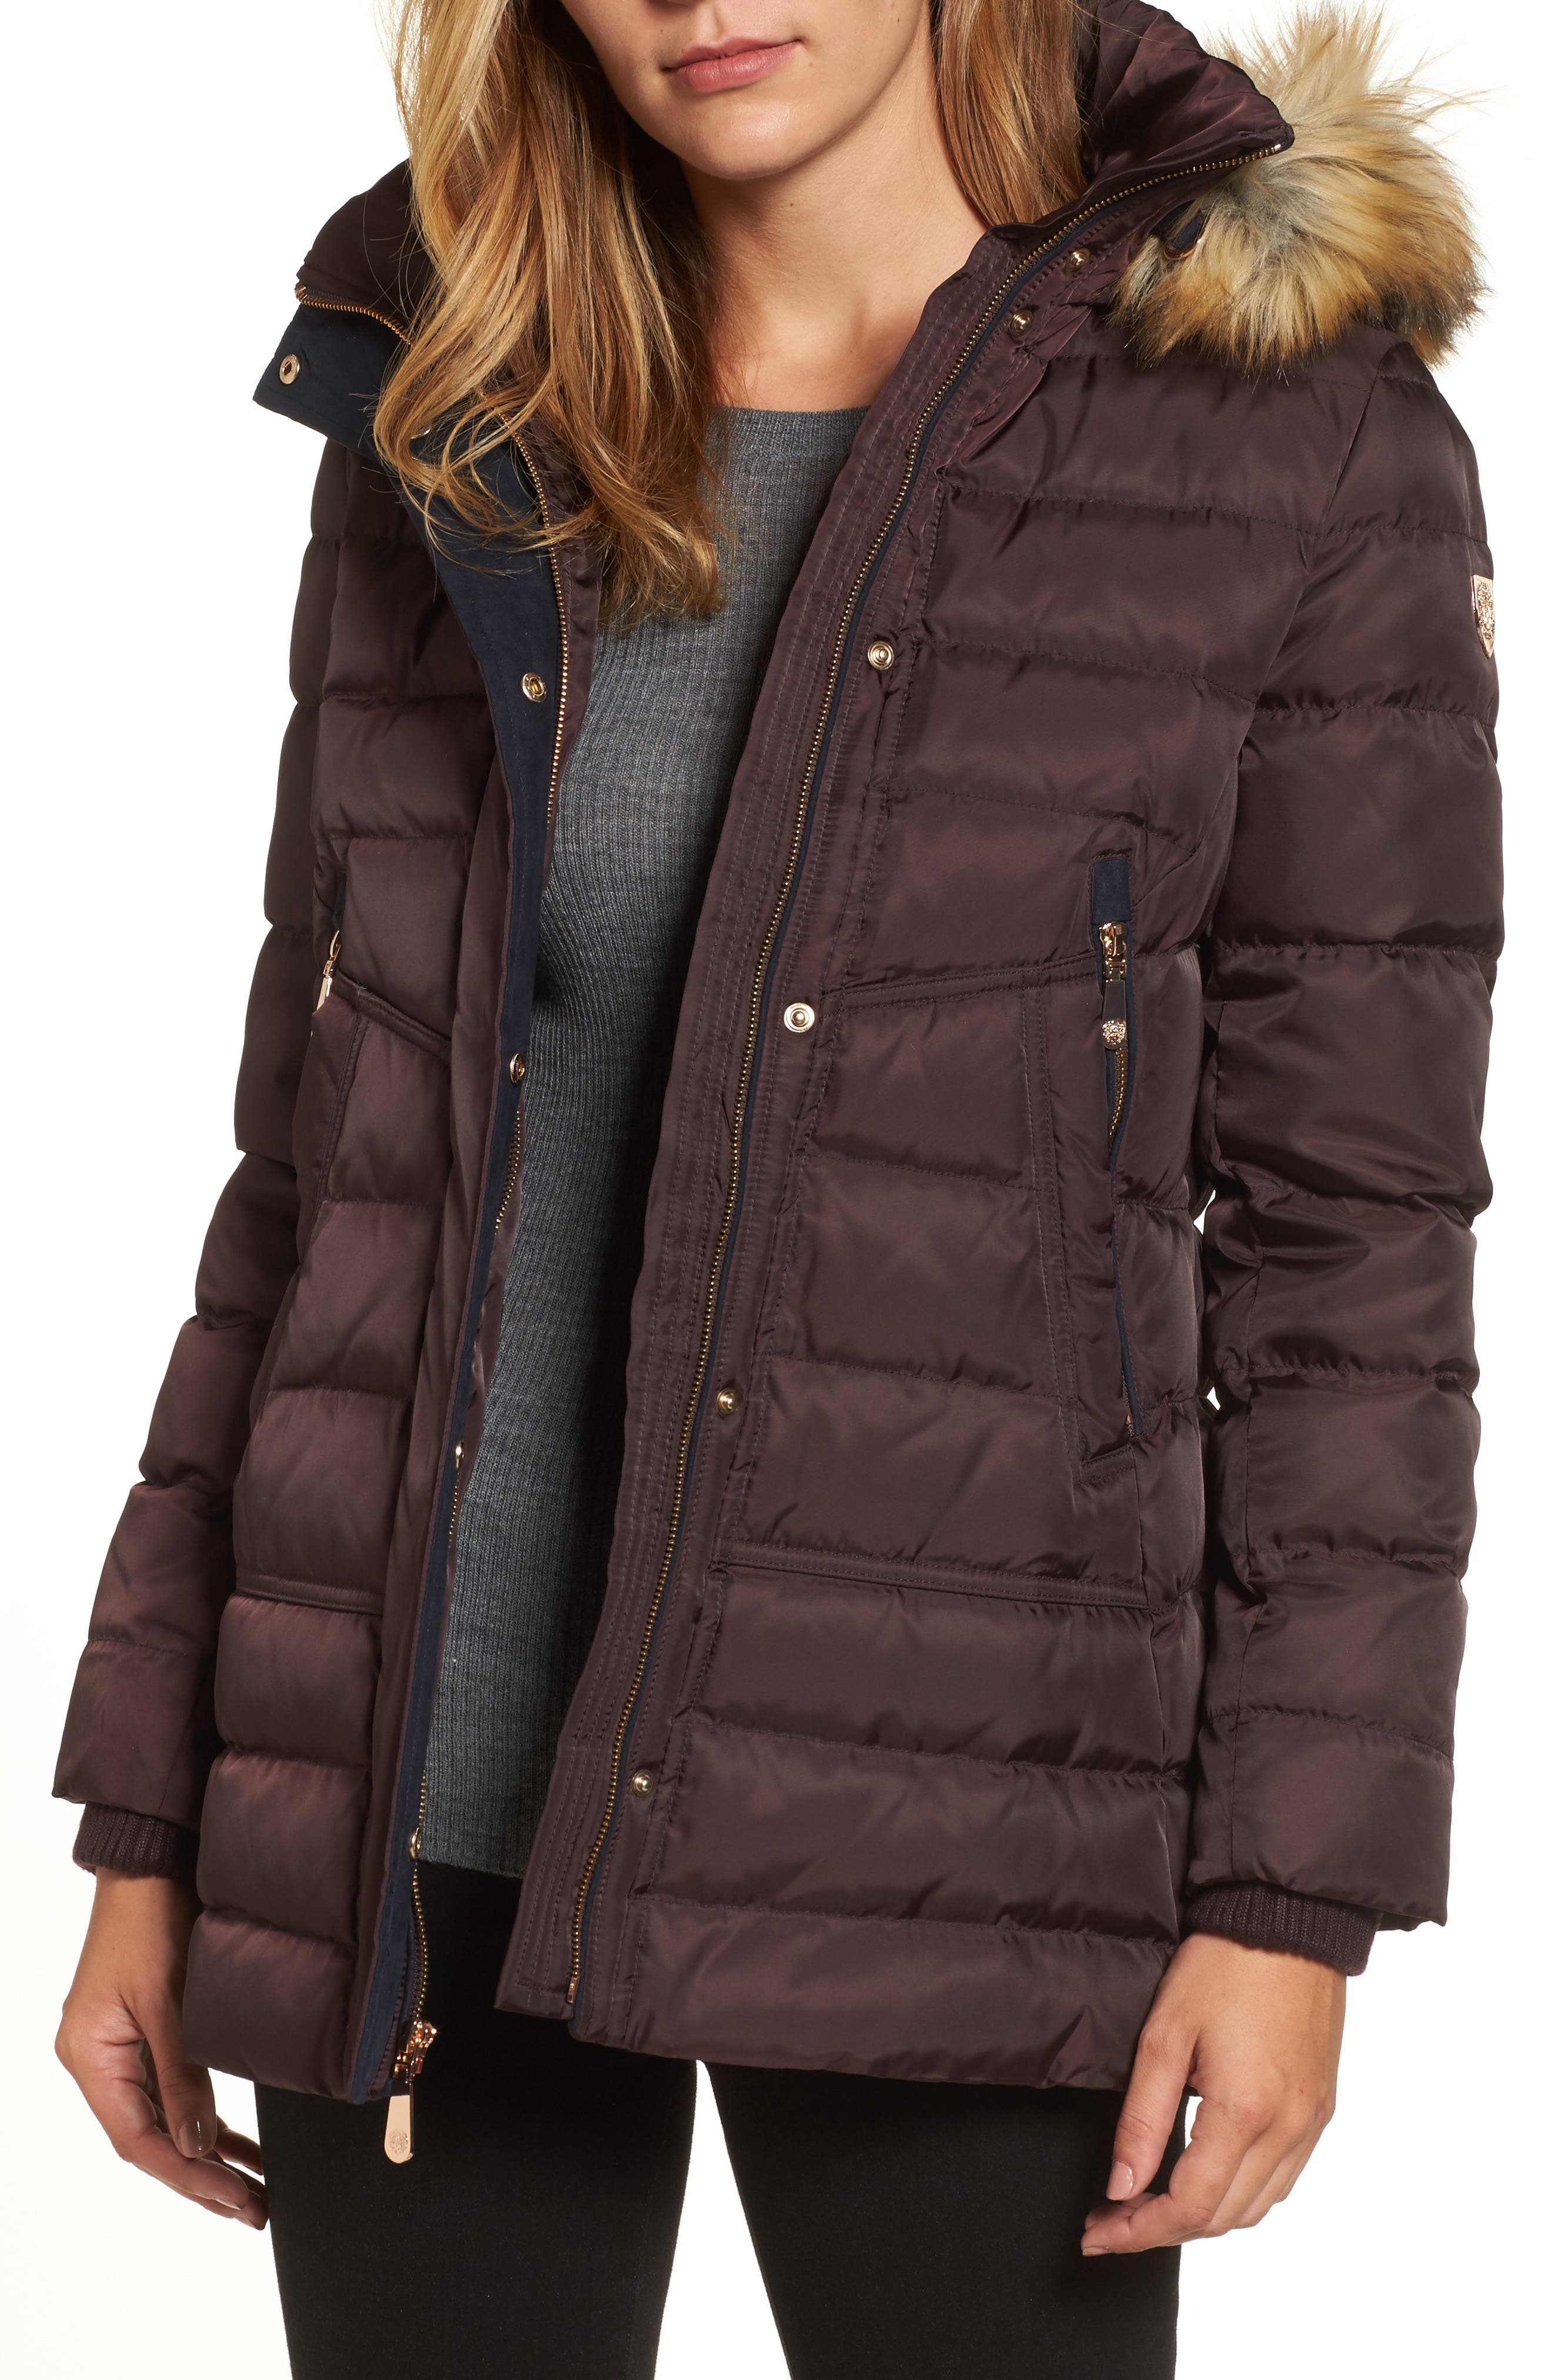 cotton men c reversible collection coated jacket camuto quilted black outerwear quilt coats clothing to down brand vince jackets online exclusive discount